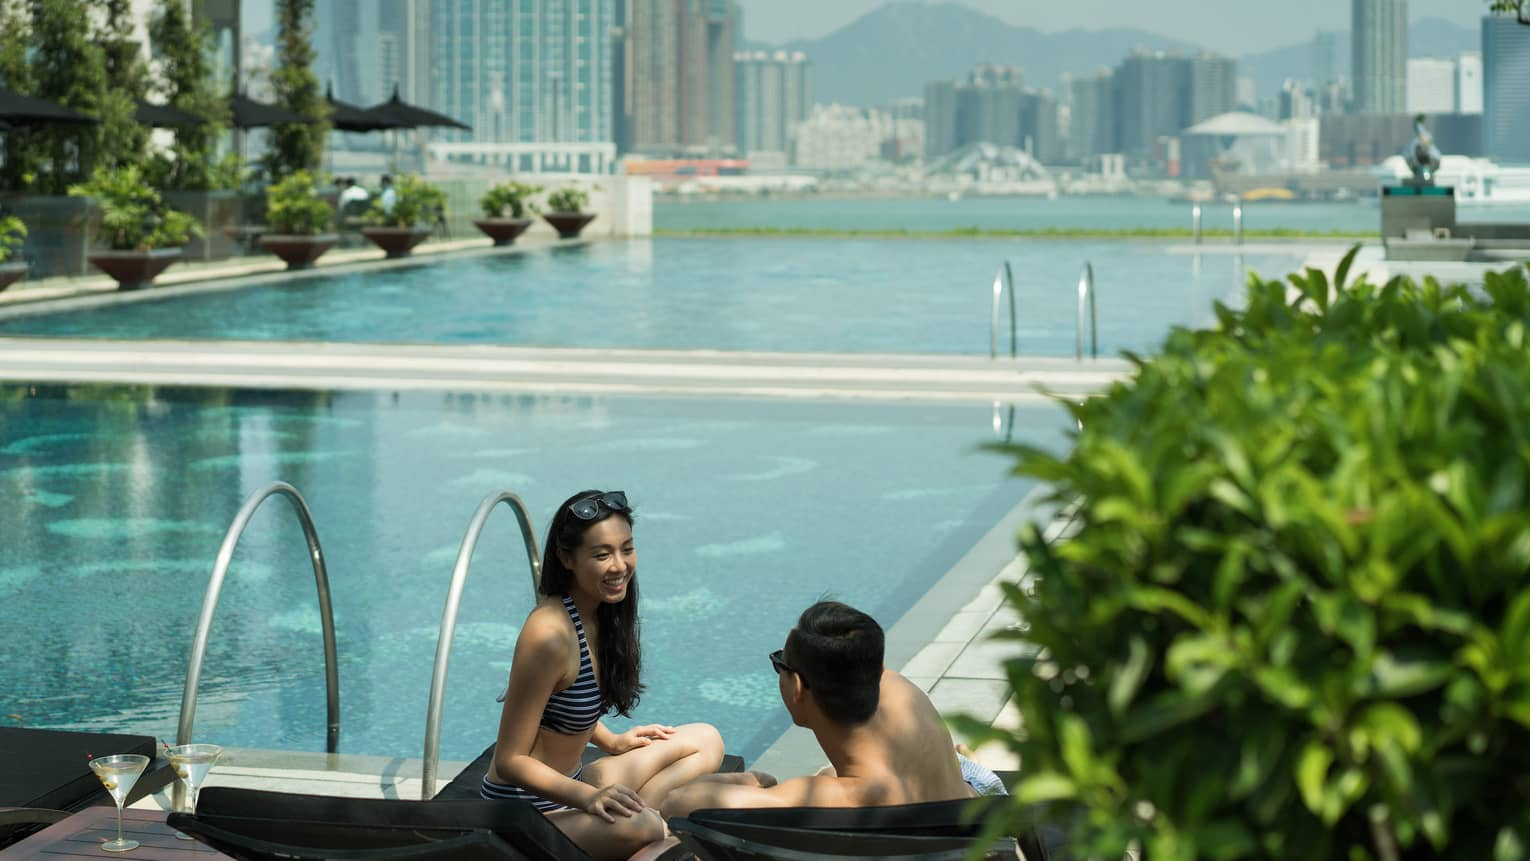 Couple wearing swimsuits on outdoor swimming pool deck, city skyline in background